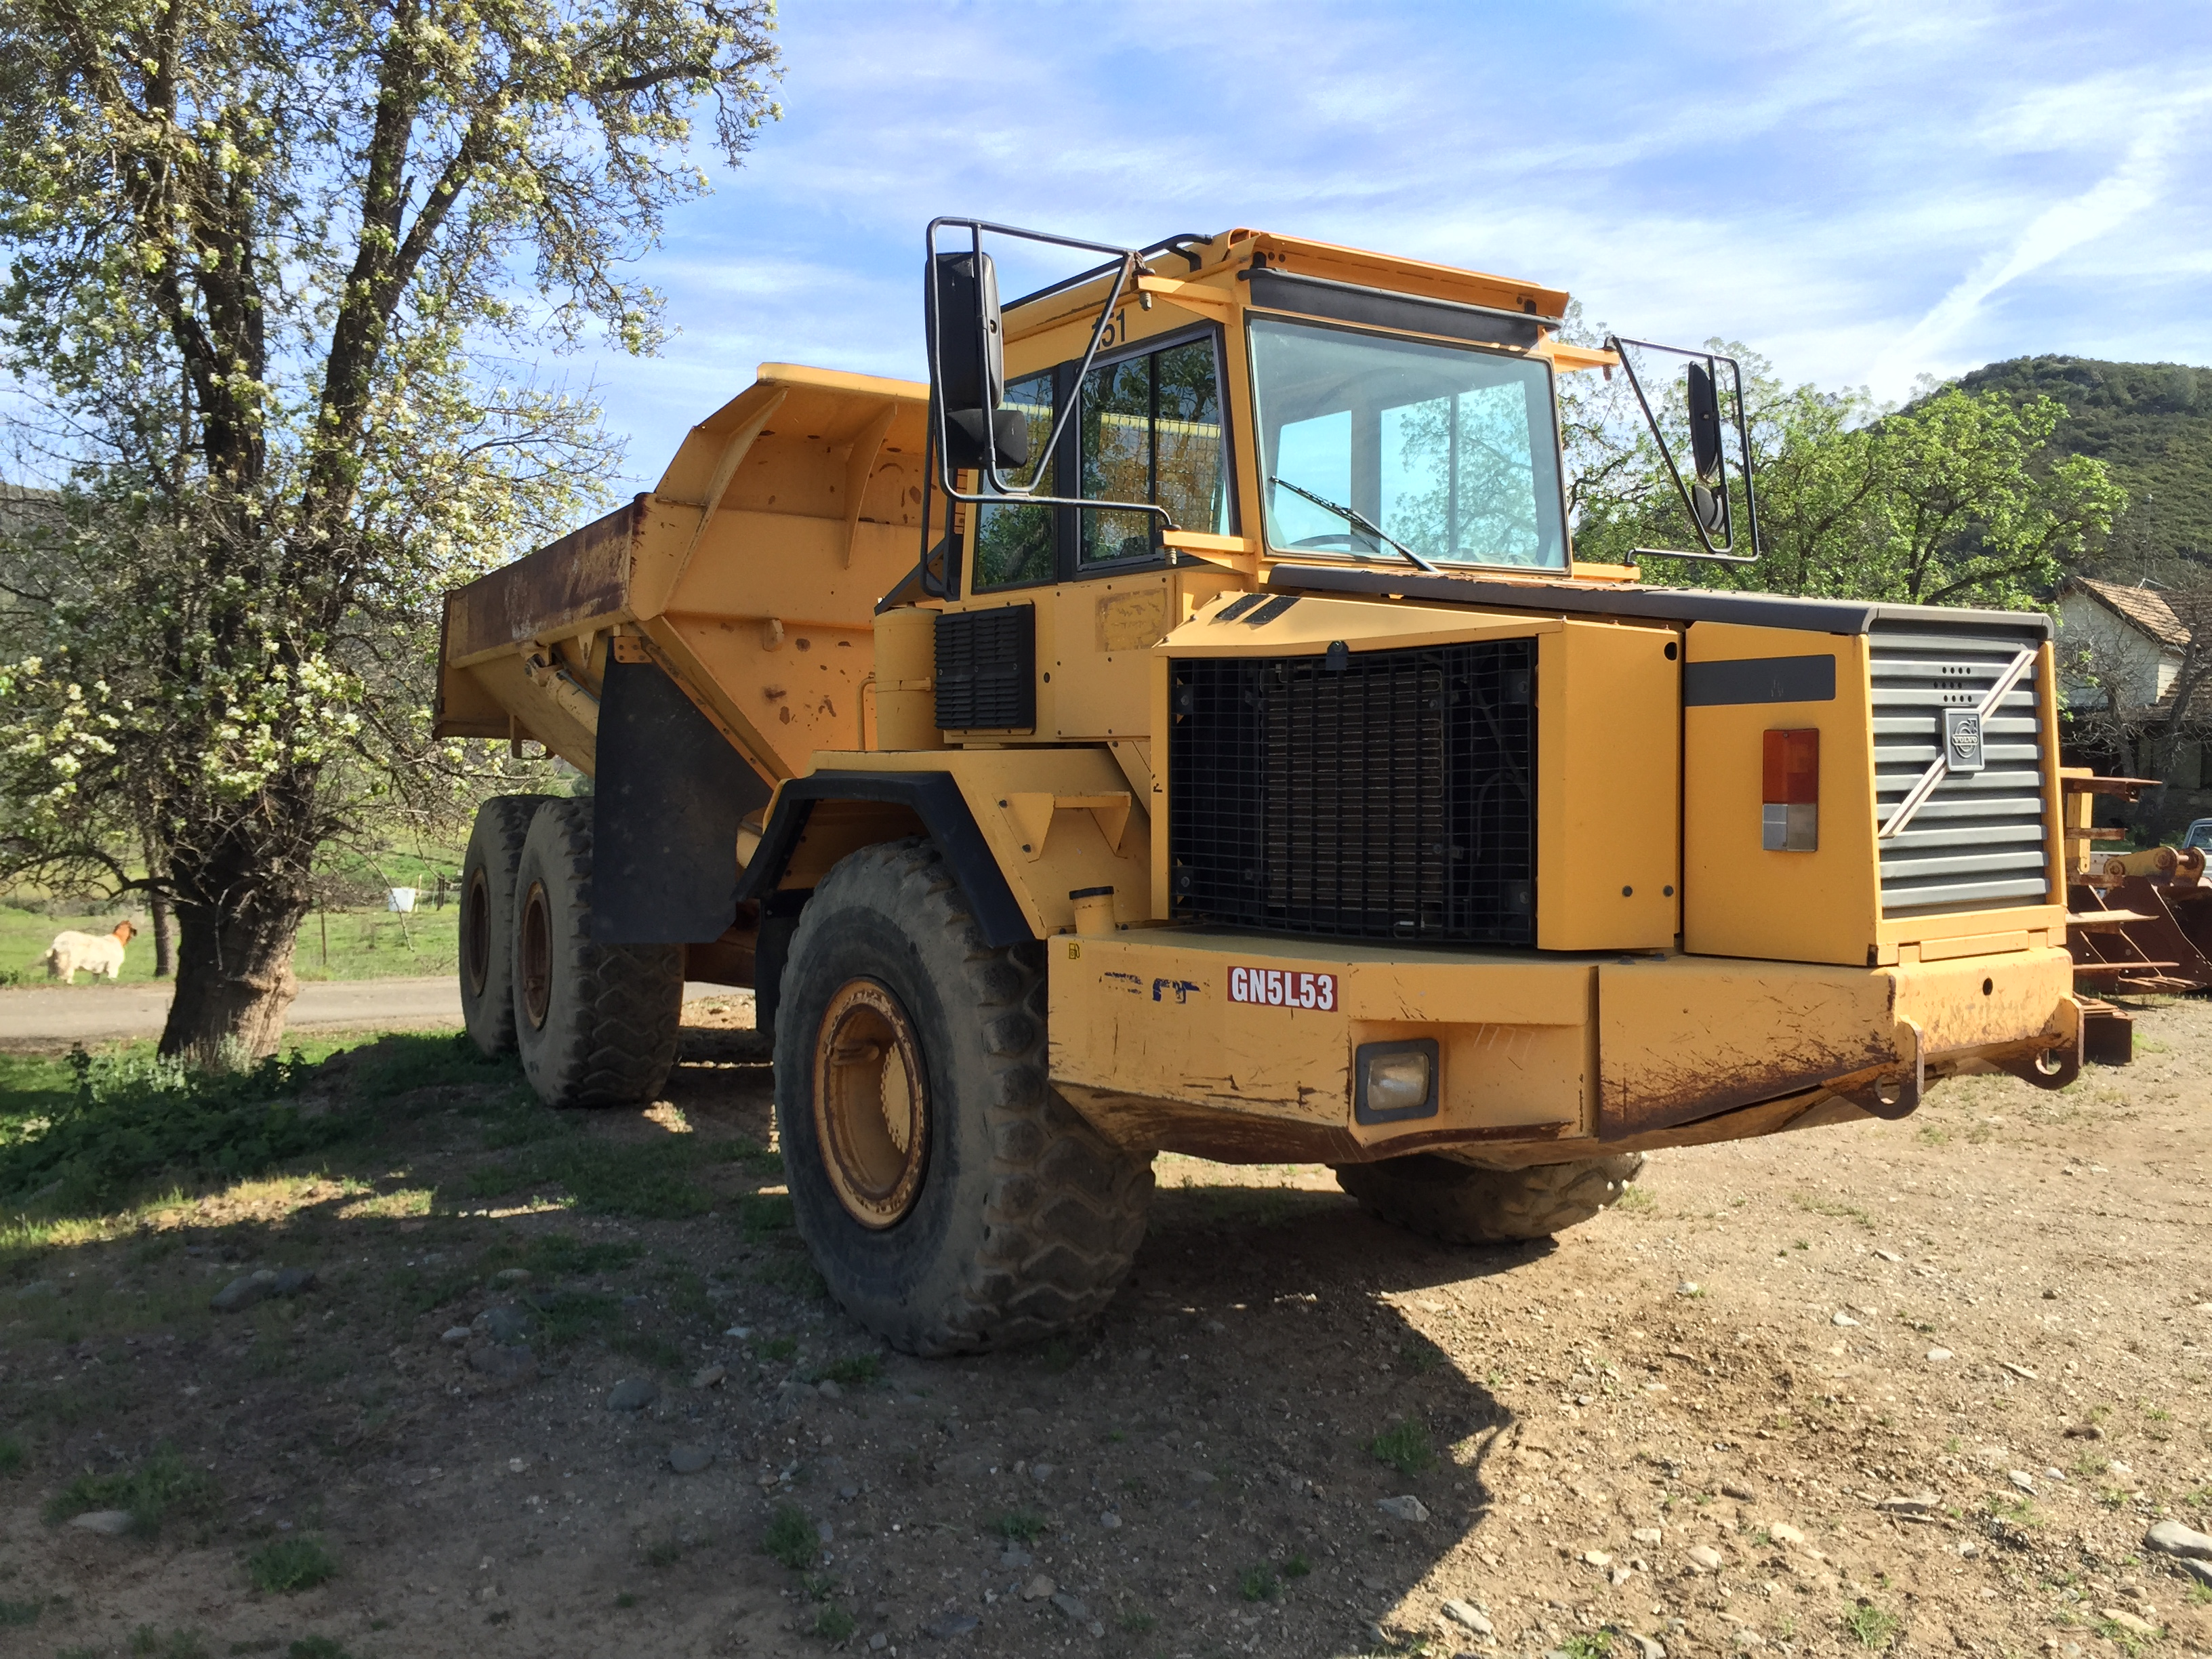 1999 VOLVO A30C HAUL TRUCK - Pacific Coast Iron - Used Heavy Equipment Dealer